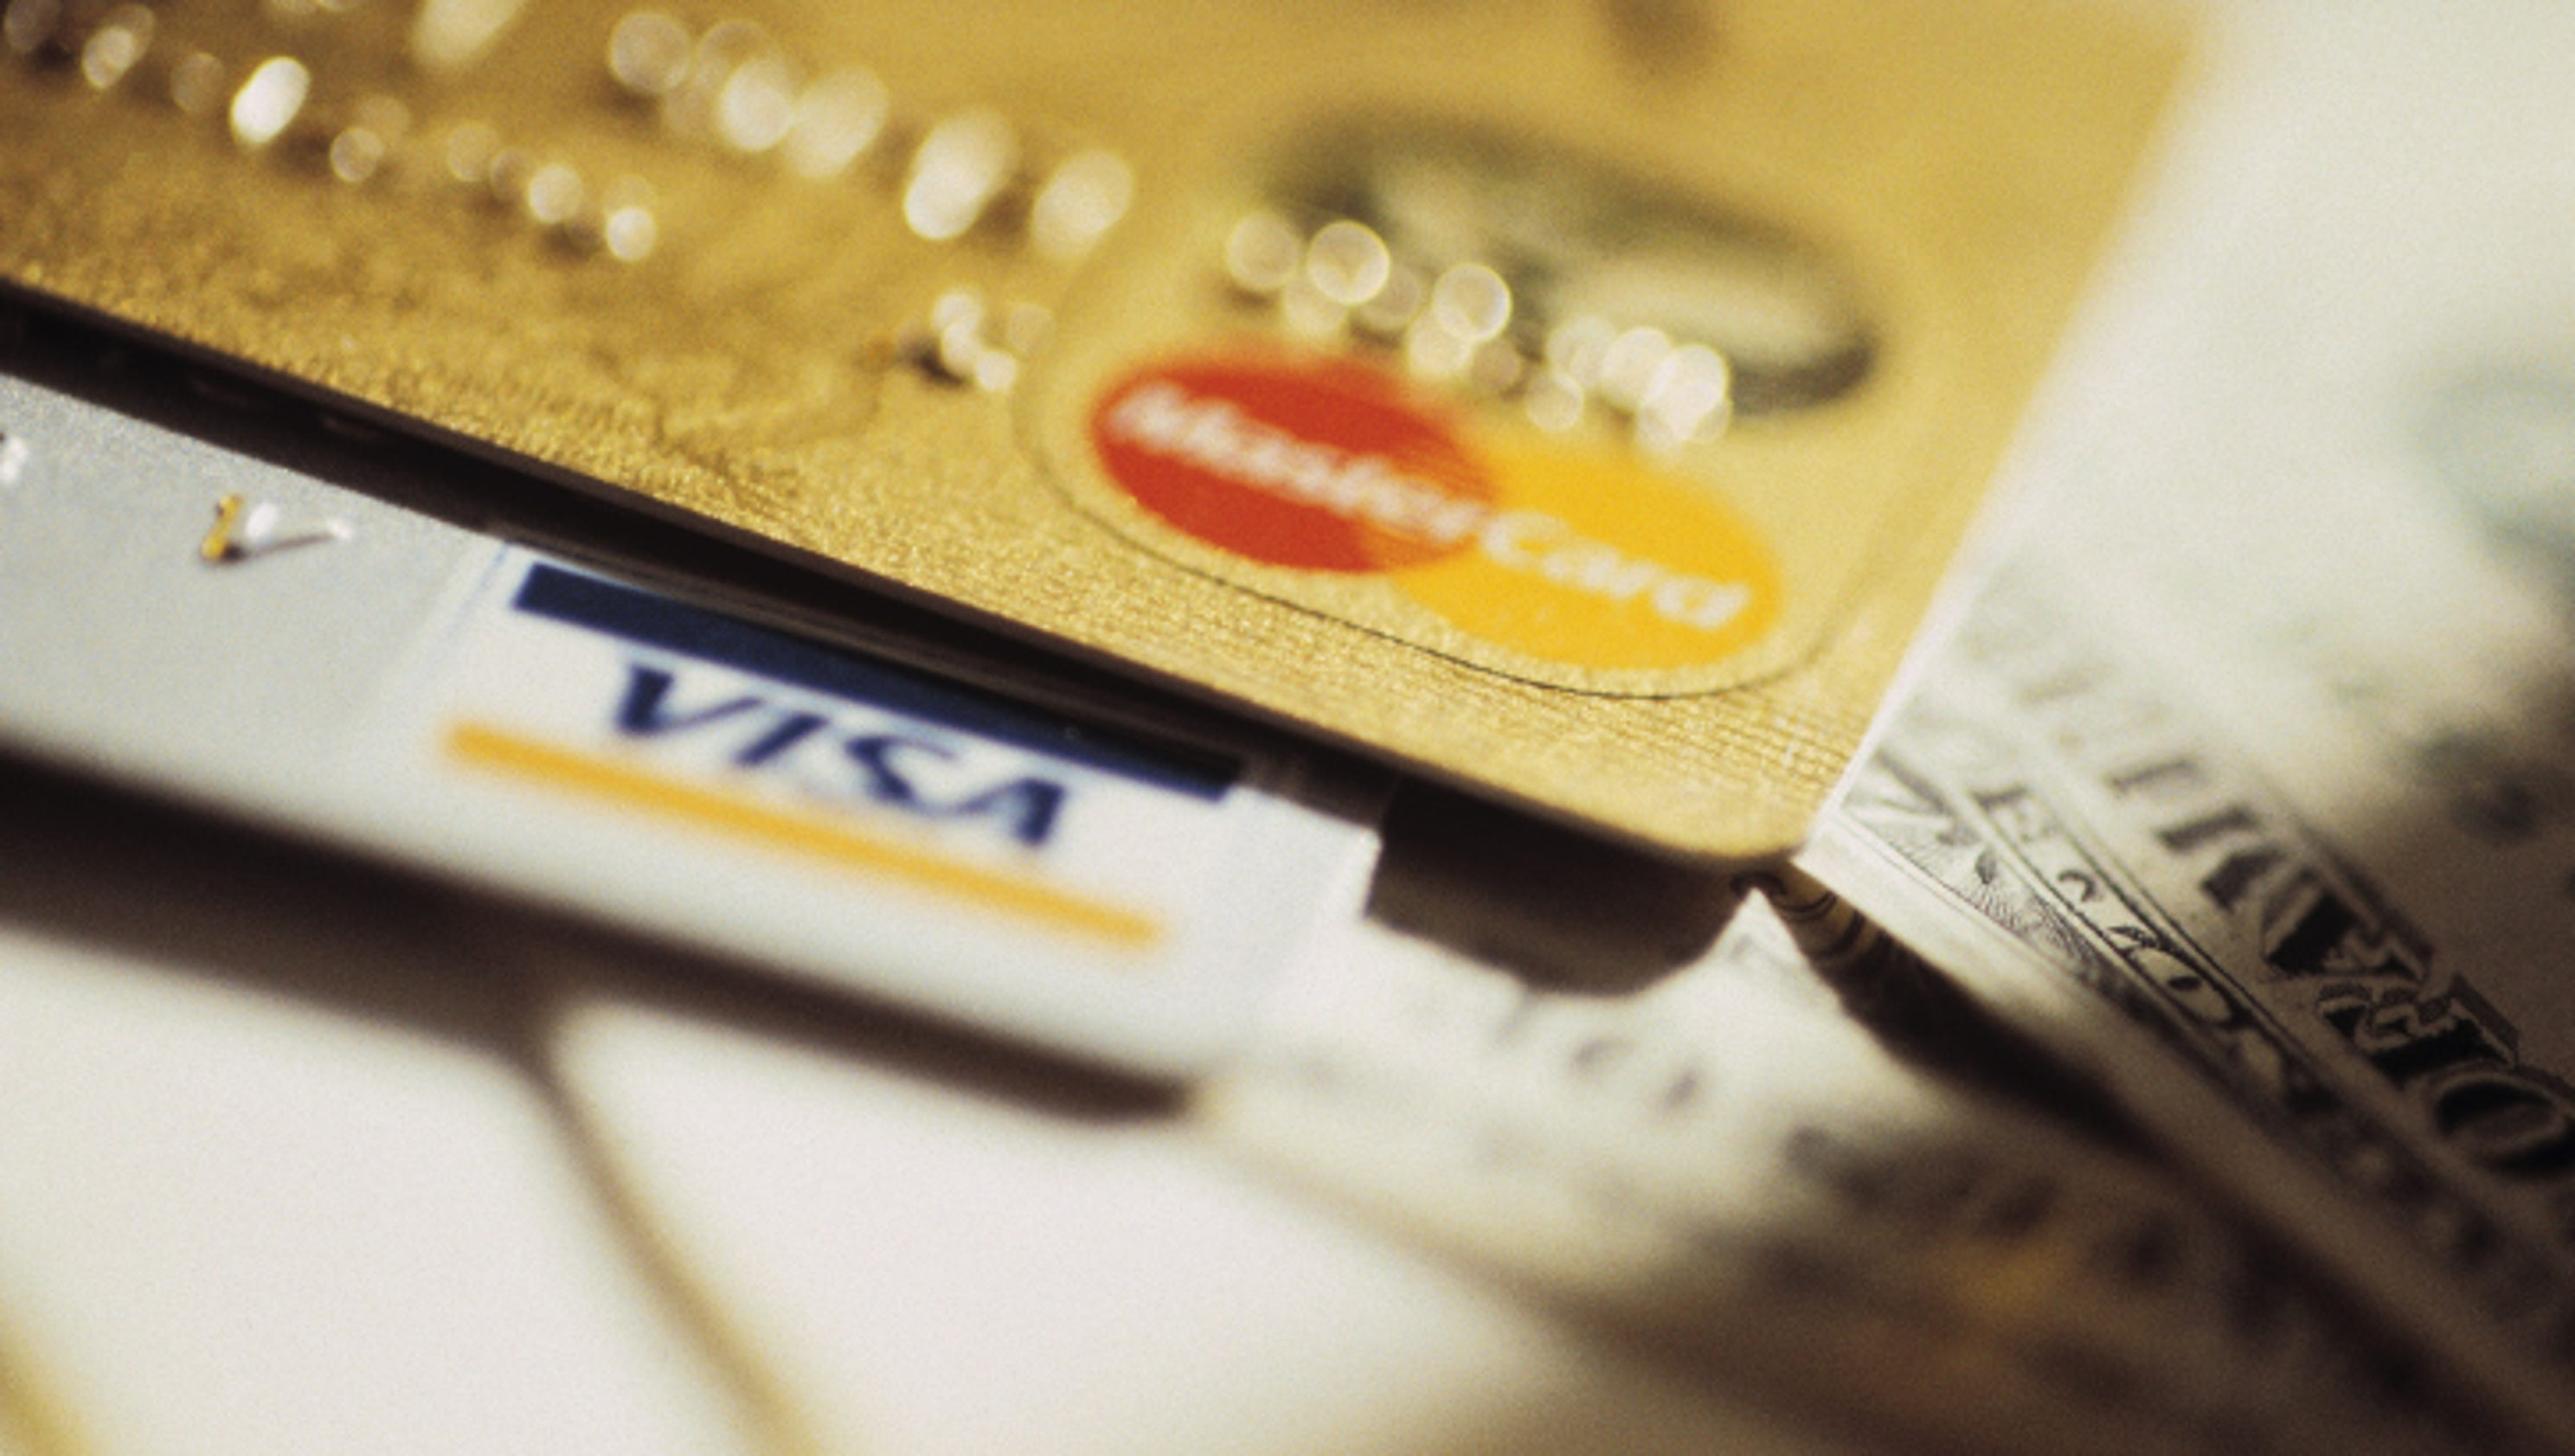 Are you susceptible to a \'cracking card\' scam?